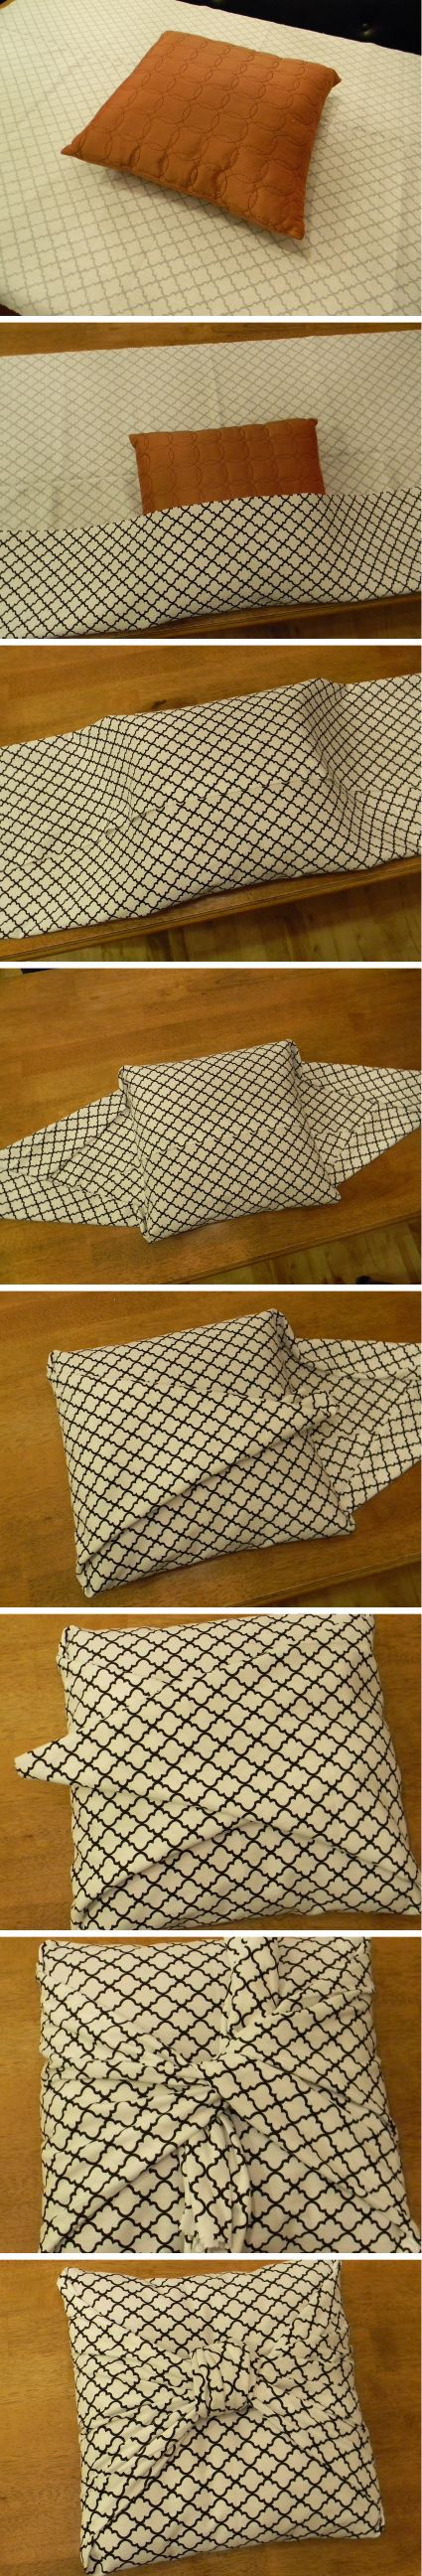 DIY no sew cushion covers